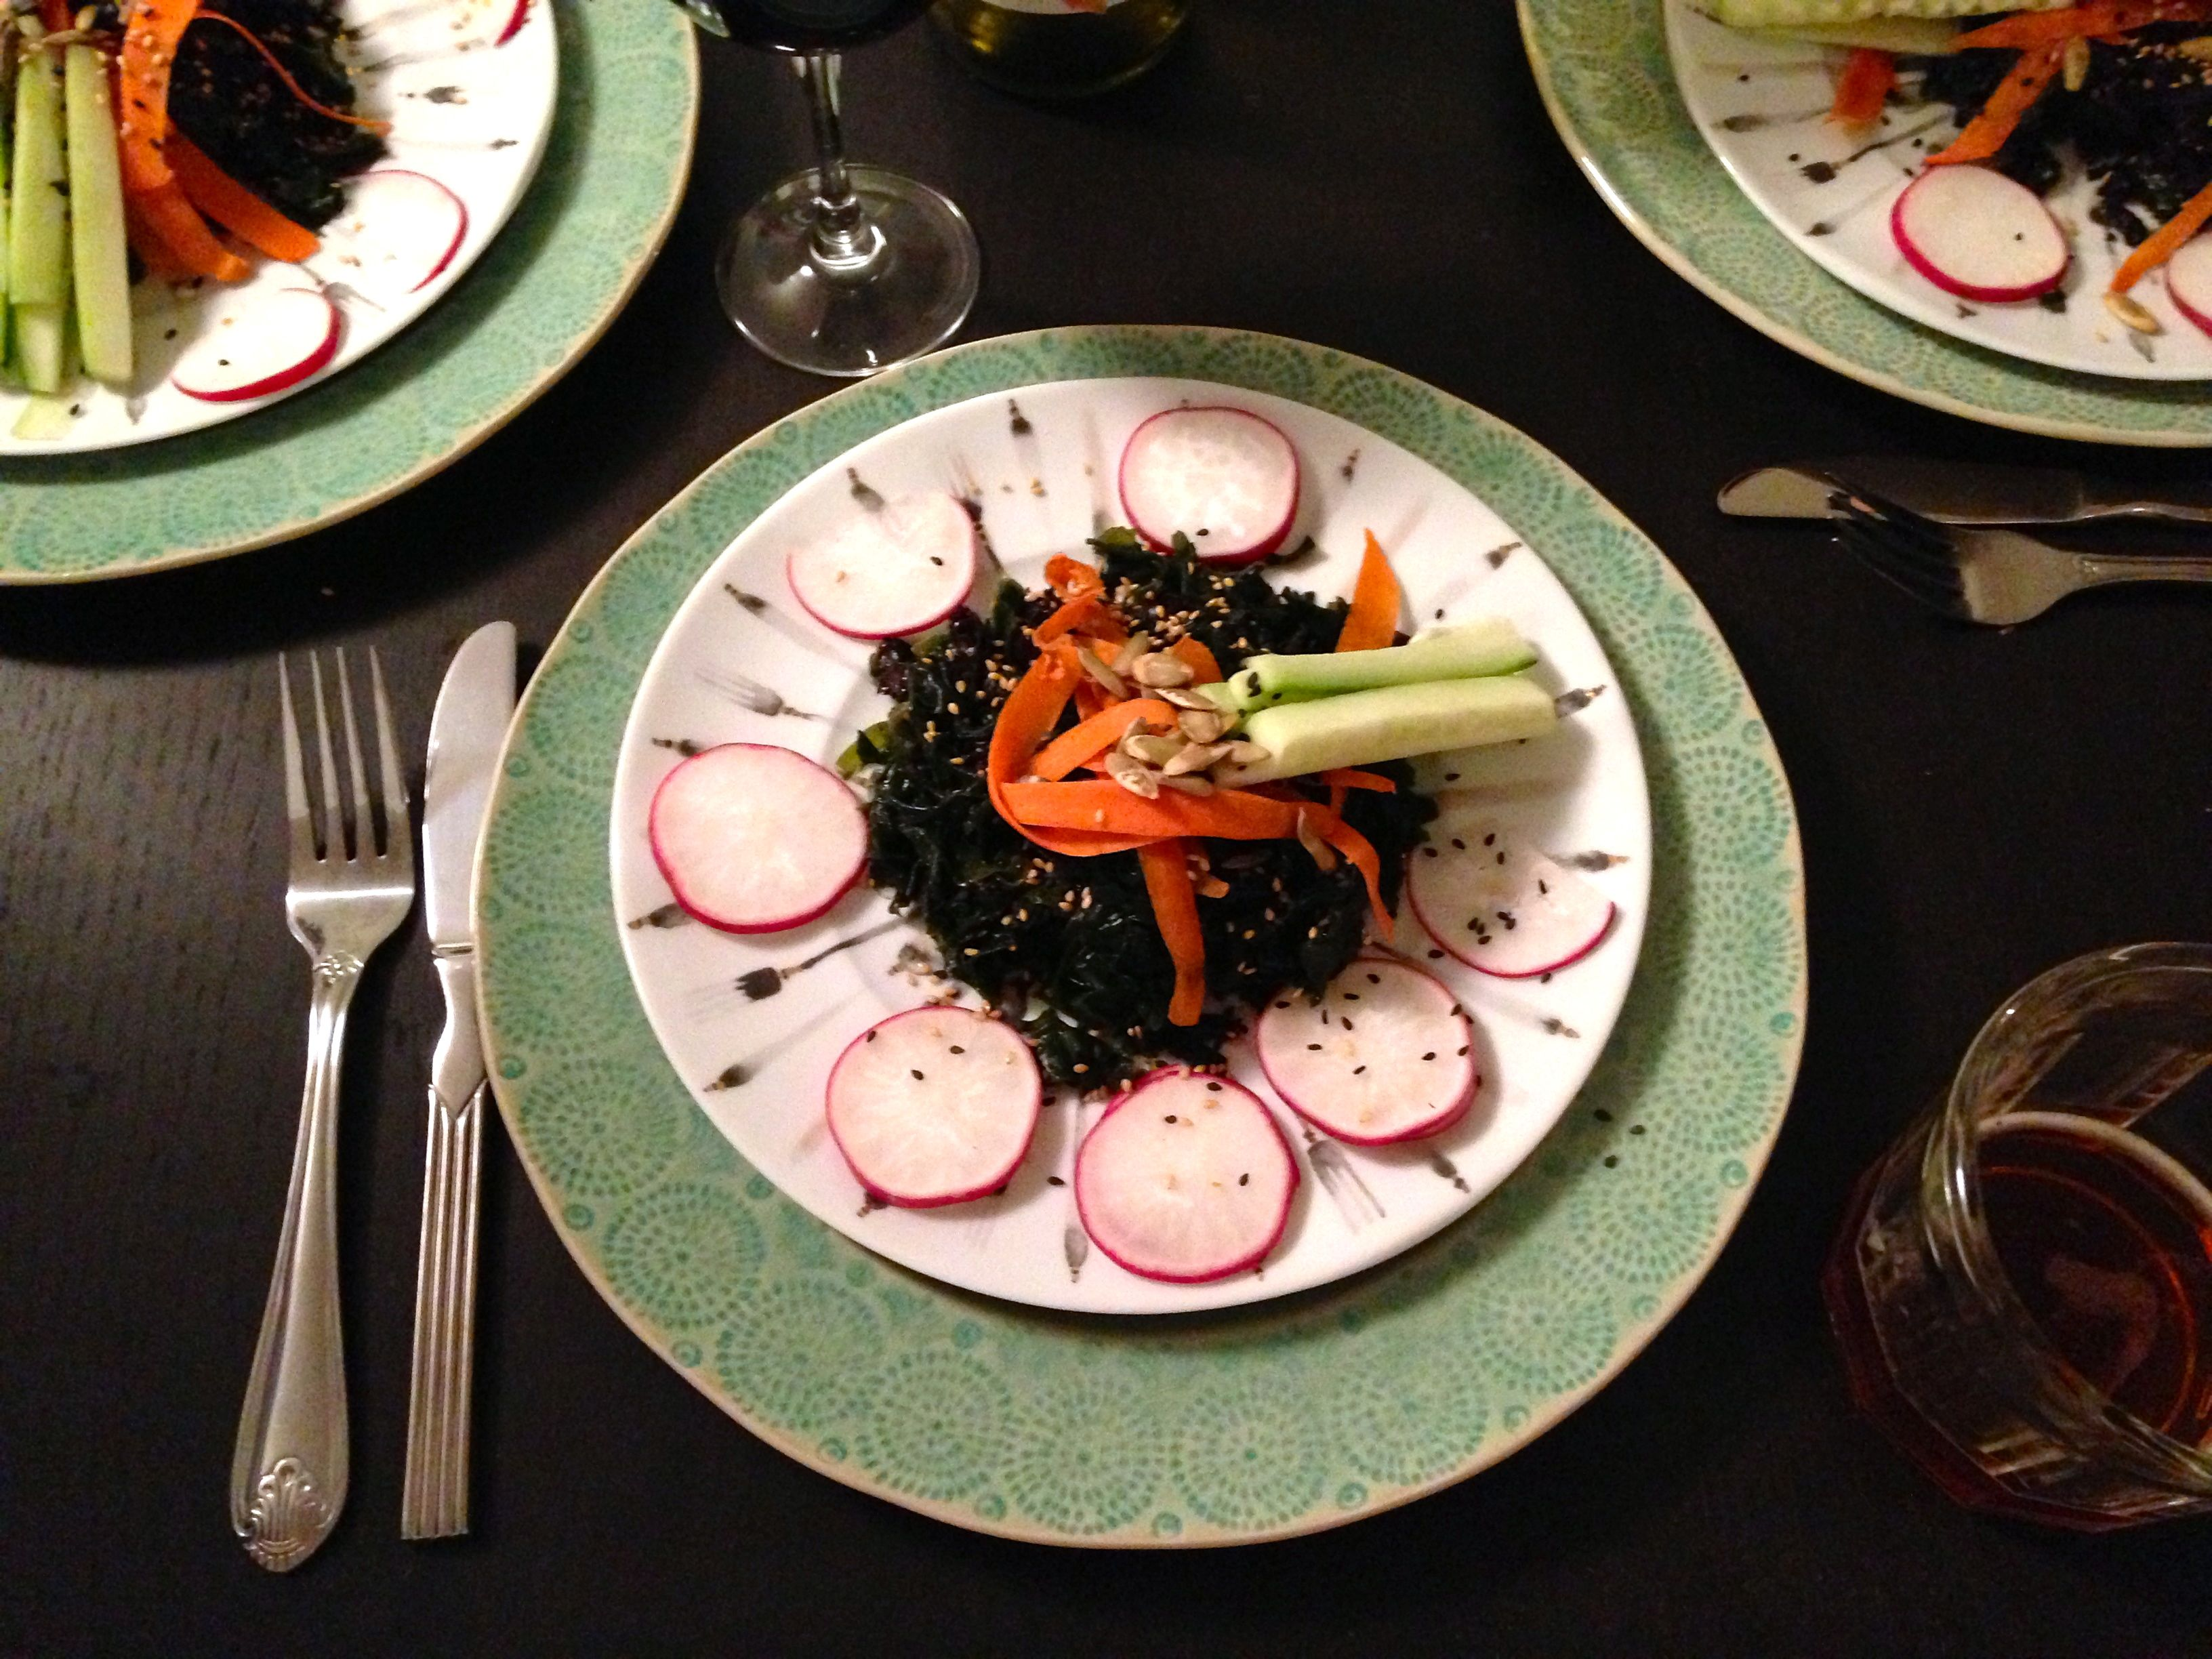 seaweed salad on table